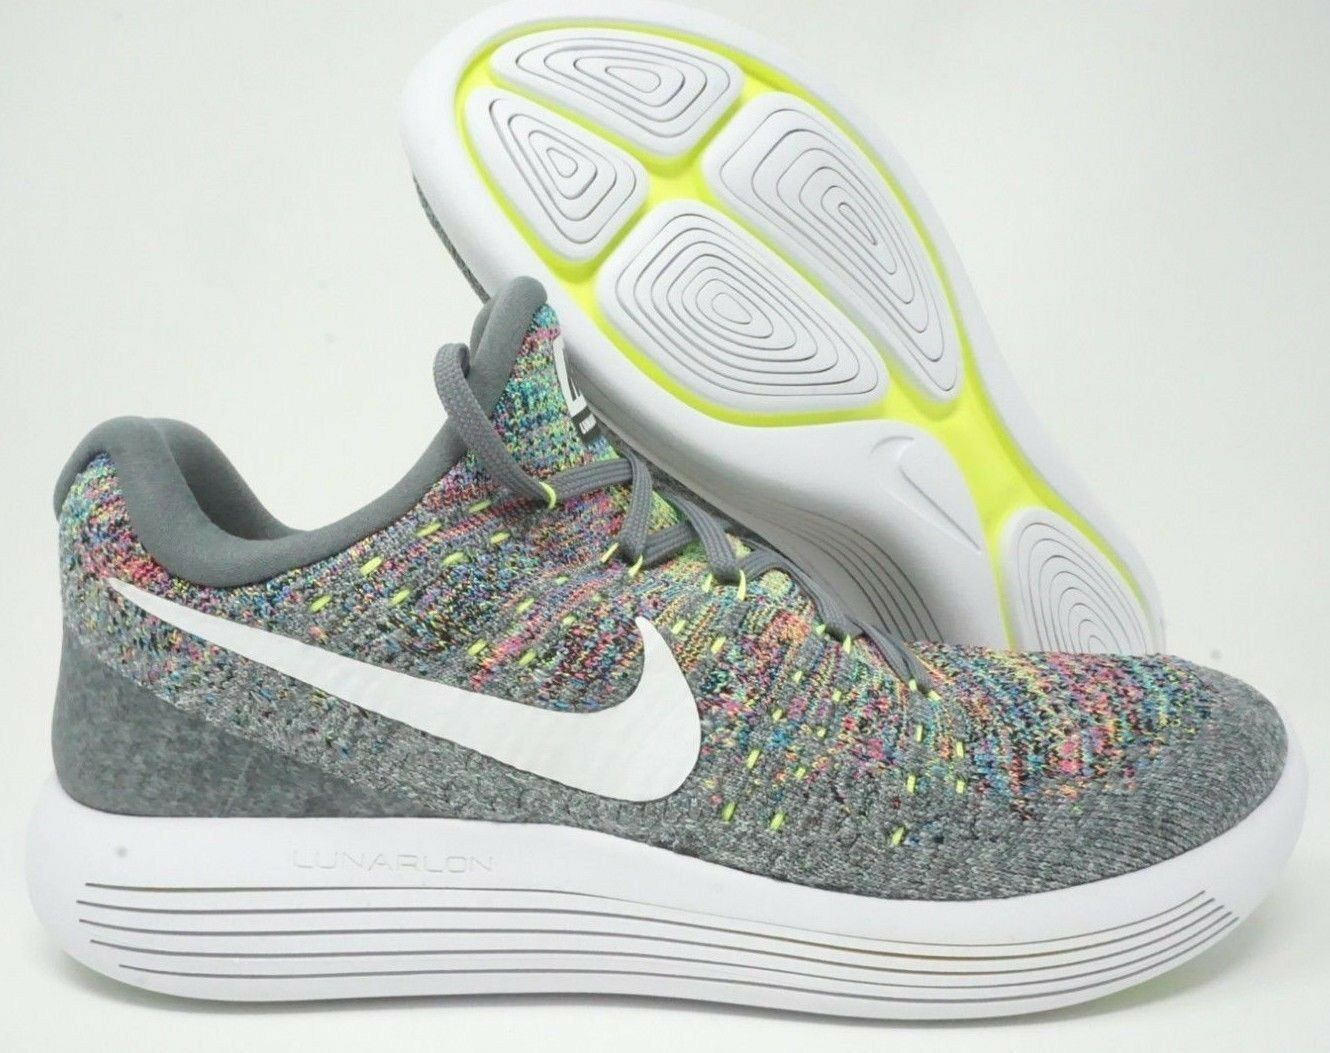 39e3ee3ecf7 Nike Nike Nike Lunarepic Low Flyknit 2 Mens Running Shoes Cool Grey White  Multi Size 4624f7